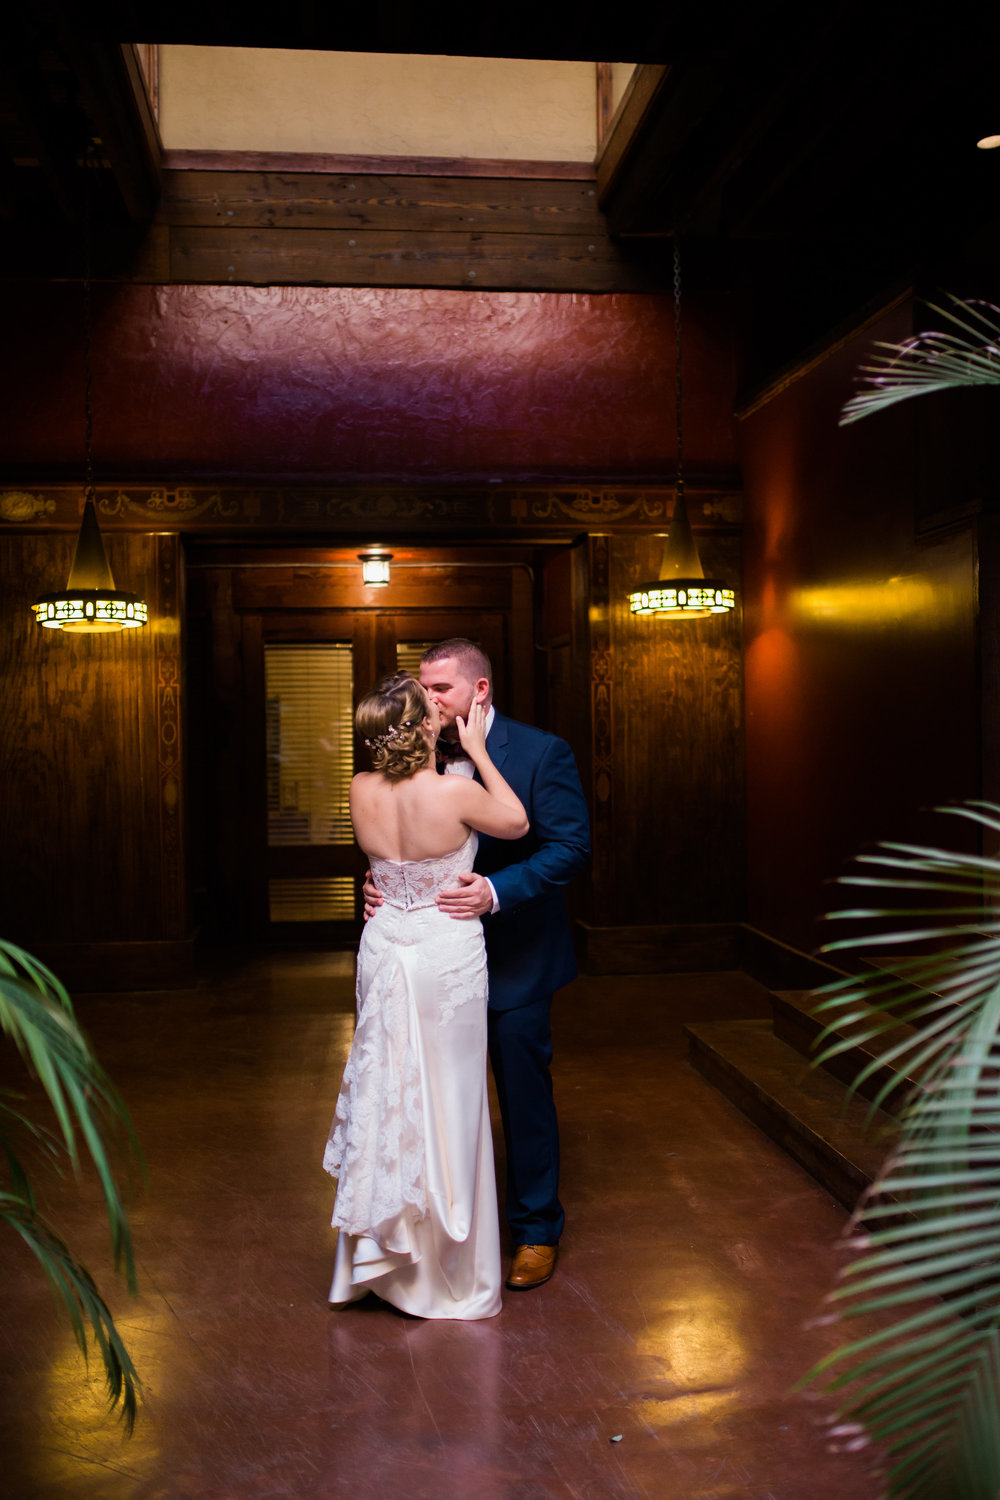 Wedding at the Trolley Station in Galveston, TX | Houston and Galveston Wedding Coordinators